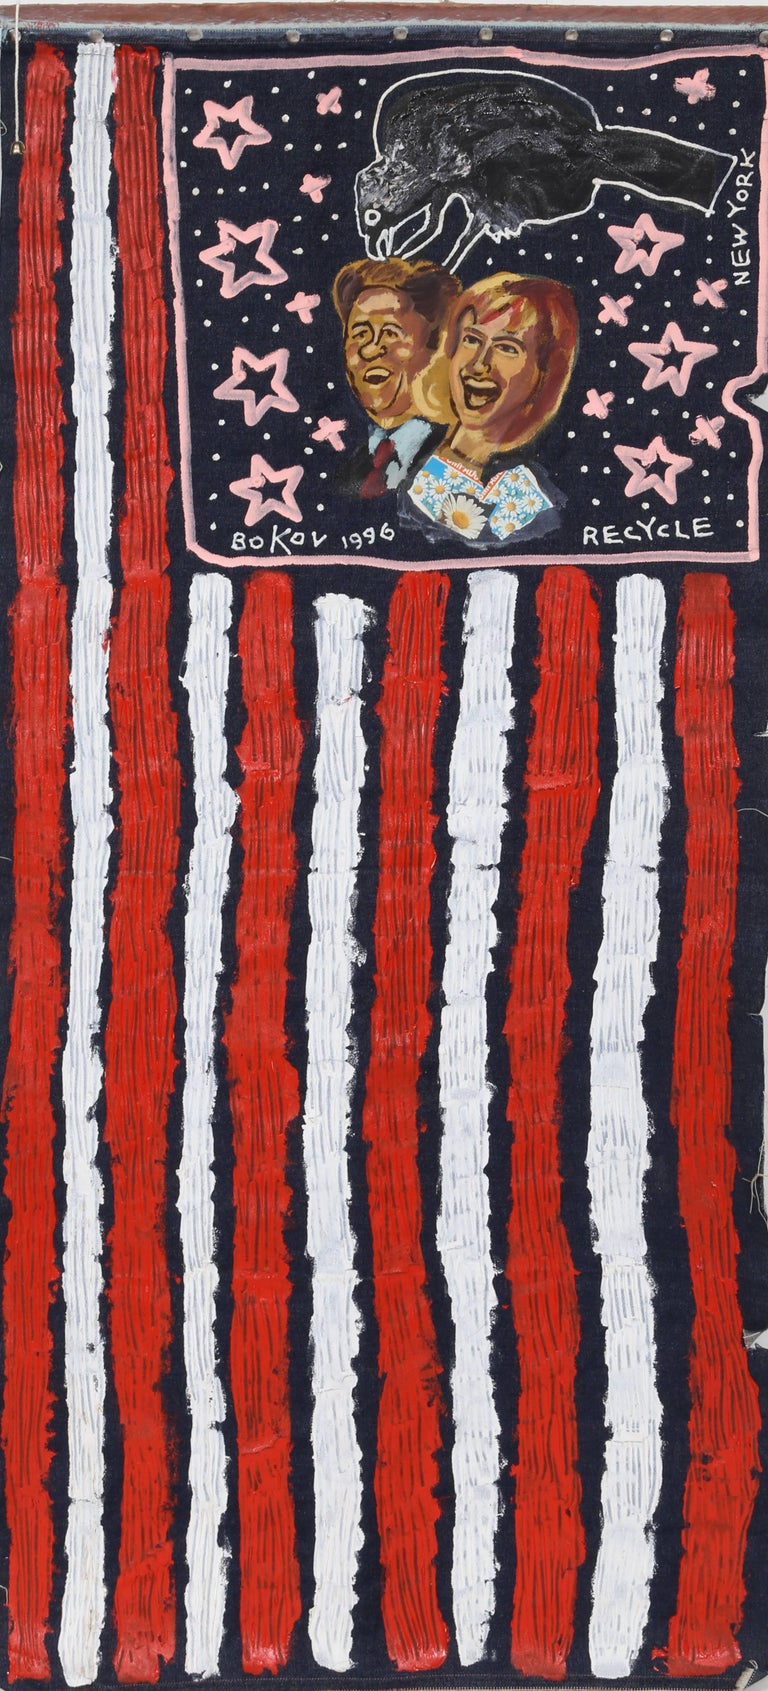 US Flag with Bill and Hillary Clinton - Mixed Media Art by Konstantin Bokov